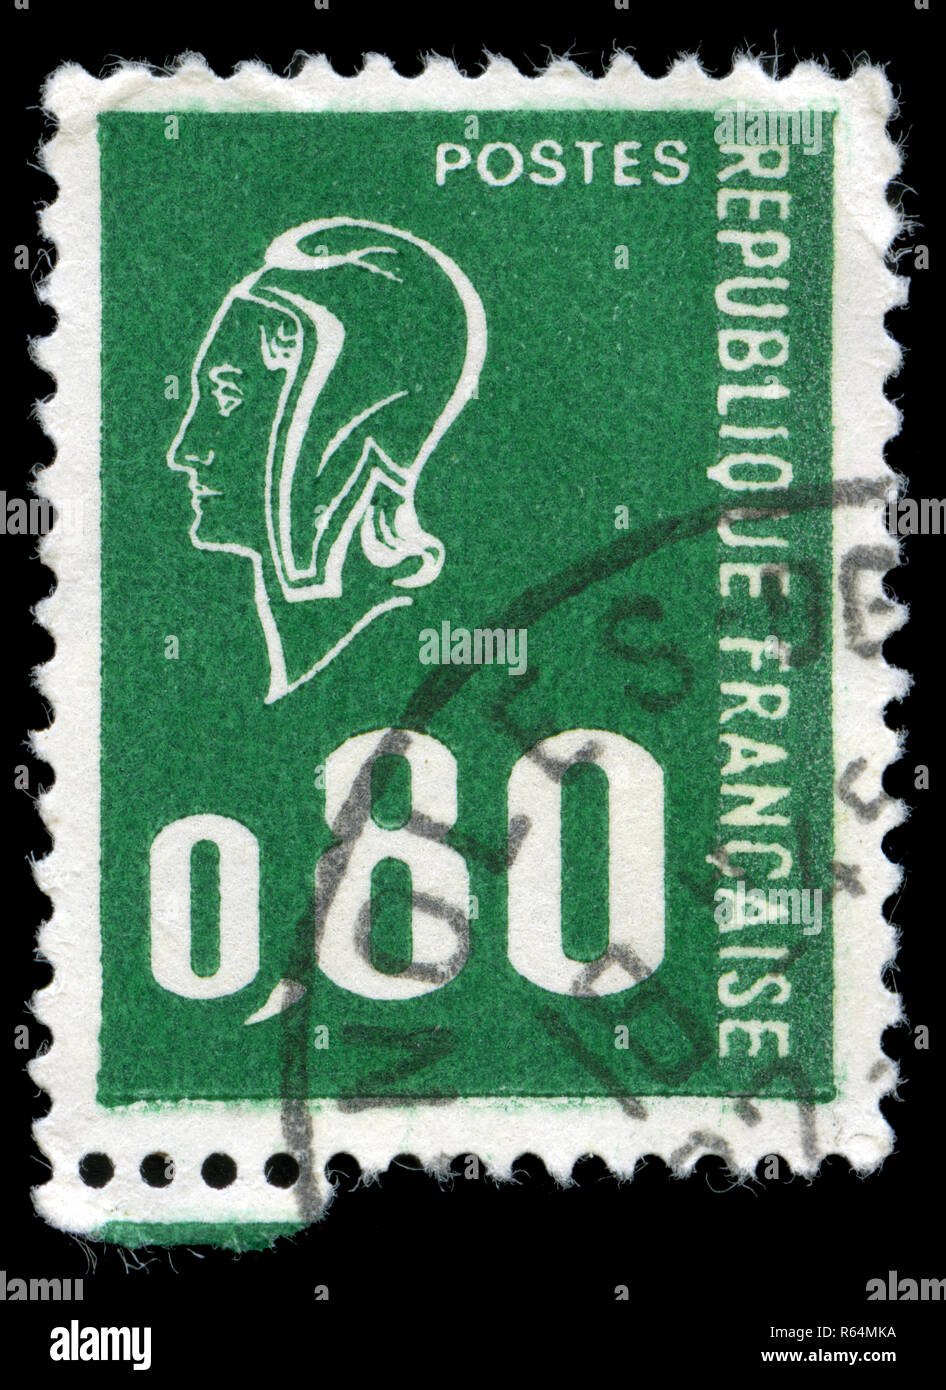 Postage stamp from France in the Marianne (Béquet) series issued in 1976 - Stock Image